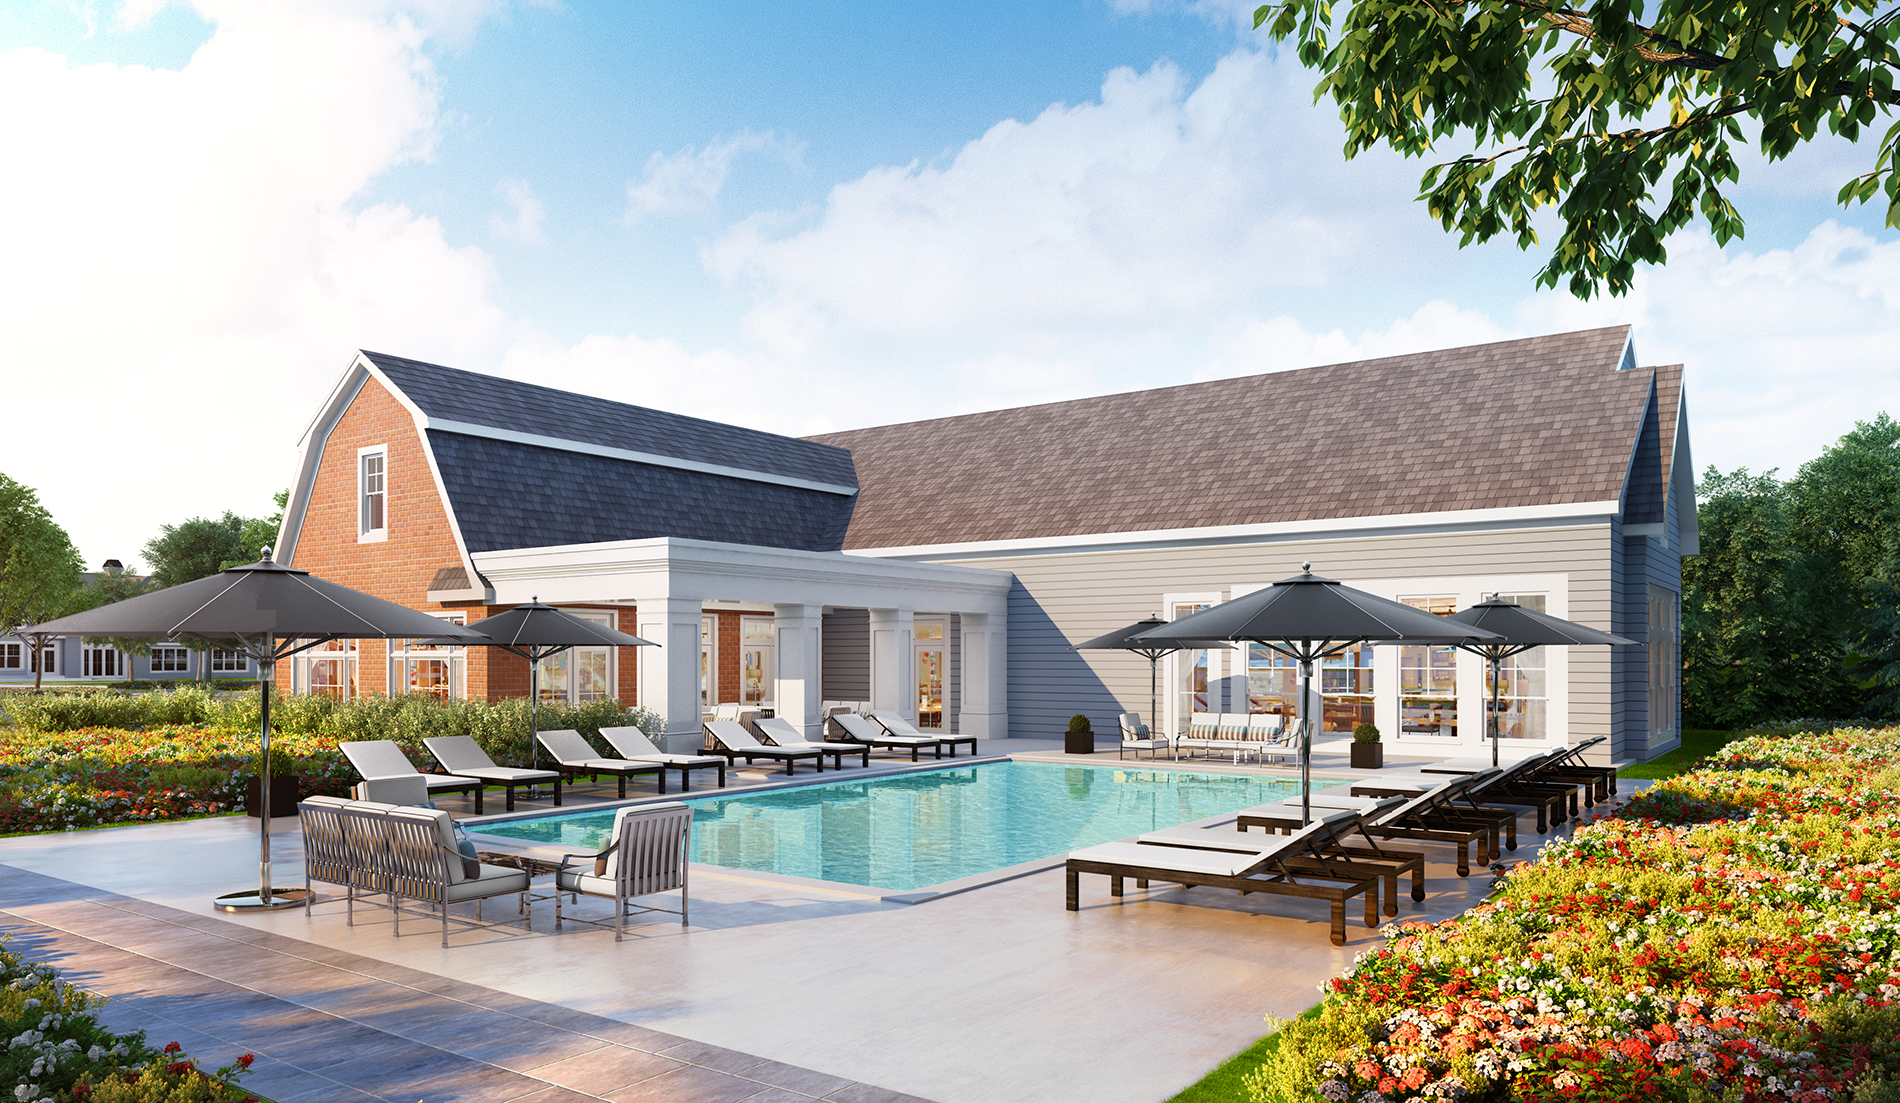 Kensington Estates Renderings-POOL HD-web.jpg